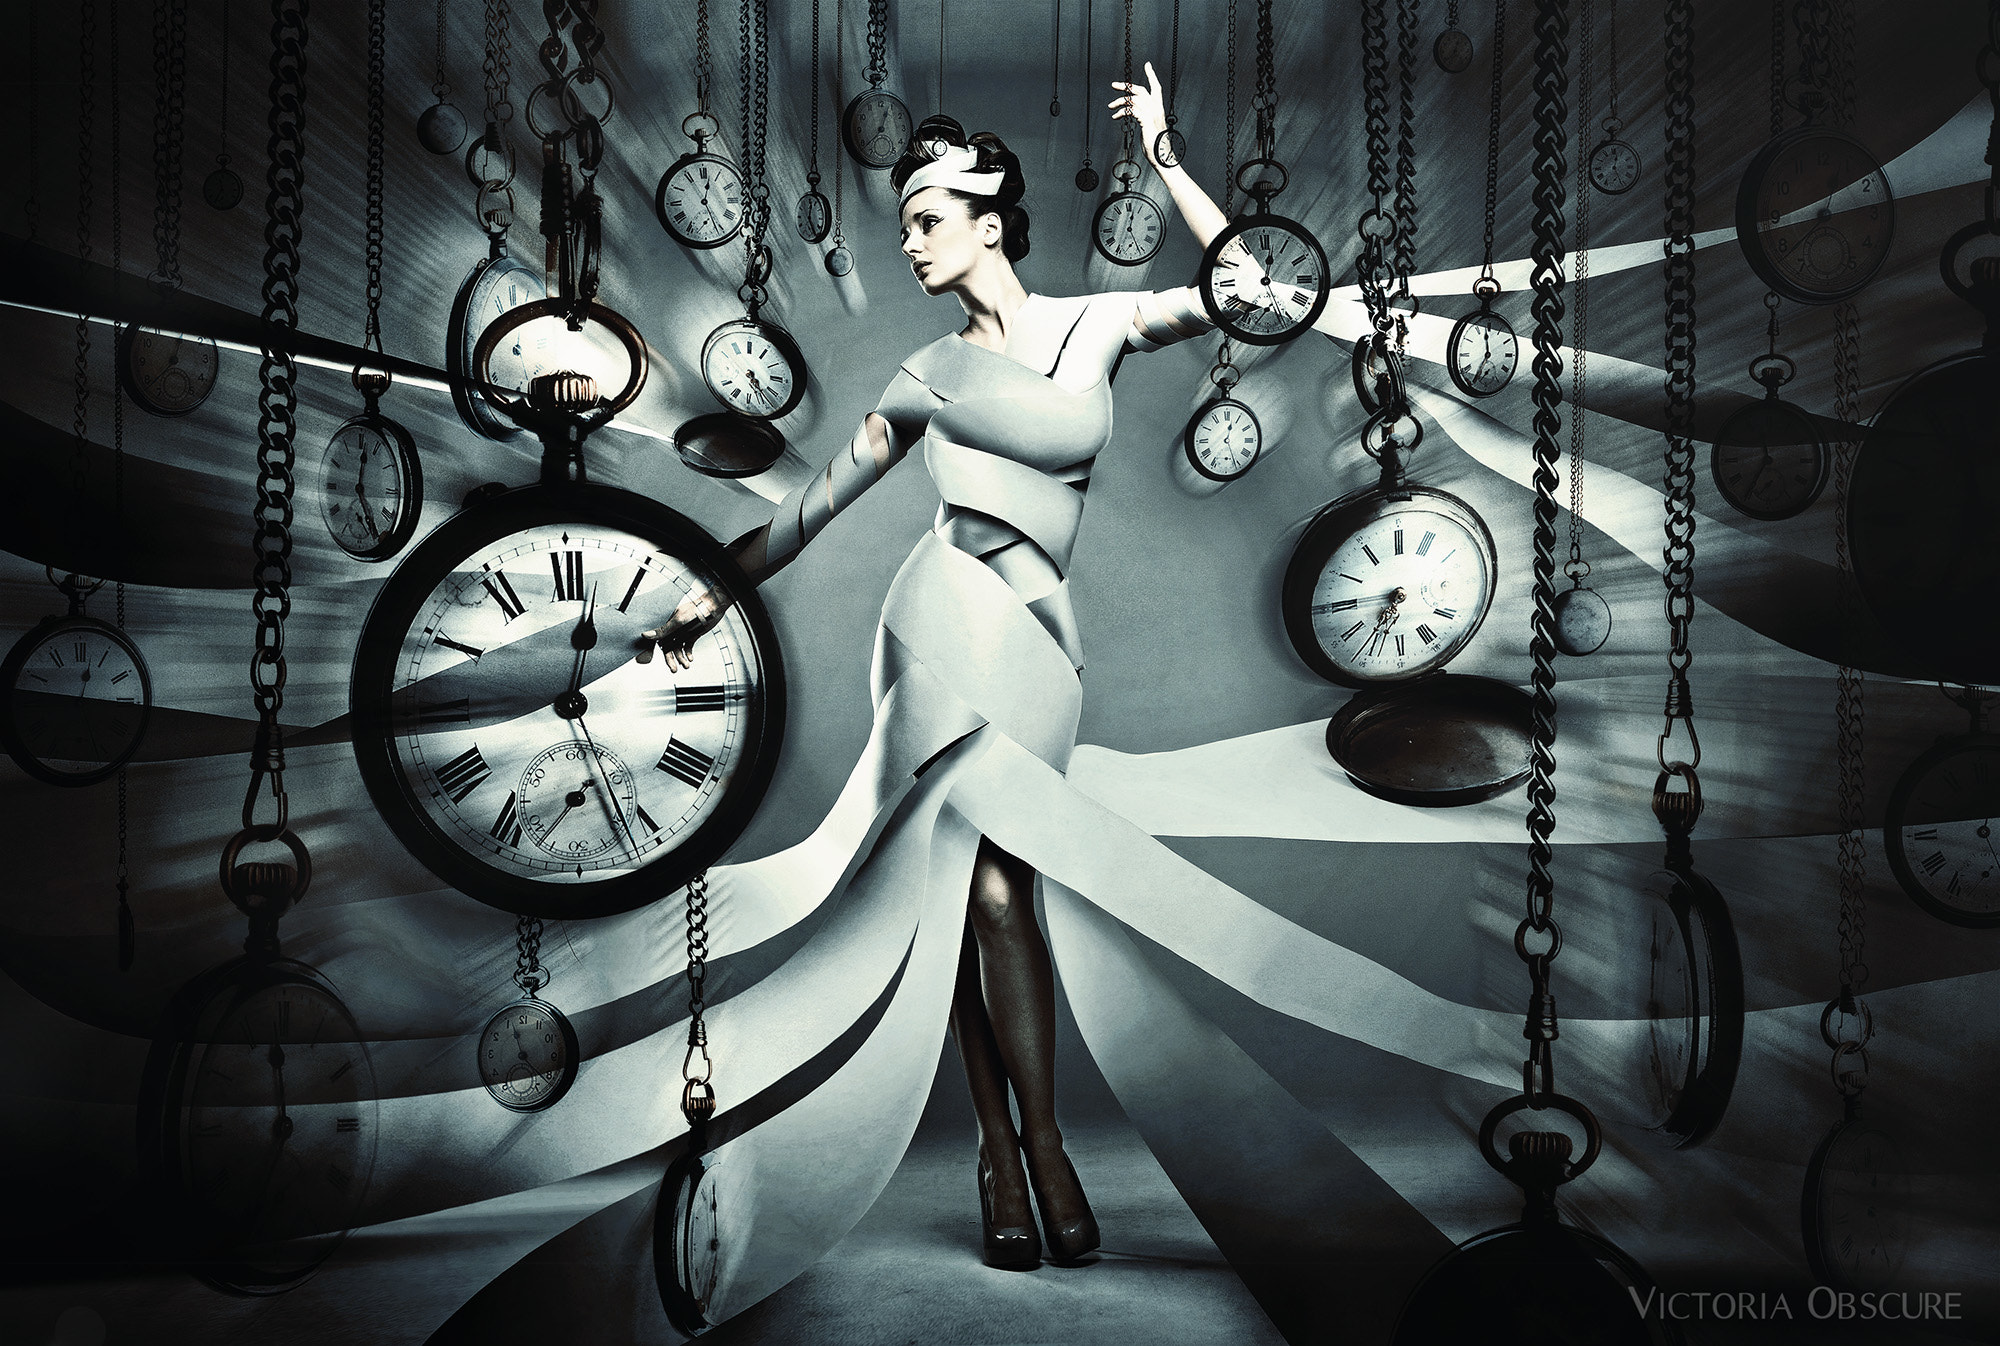 Photograph Trapped in time by Victoria Obscure on 500px